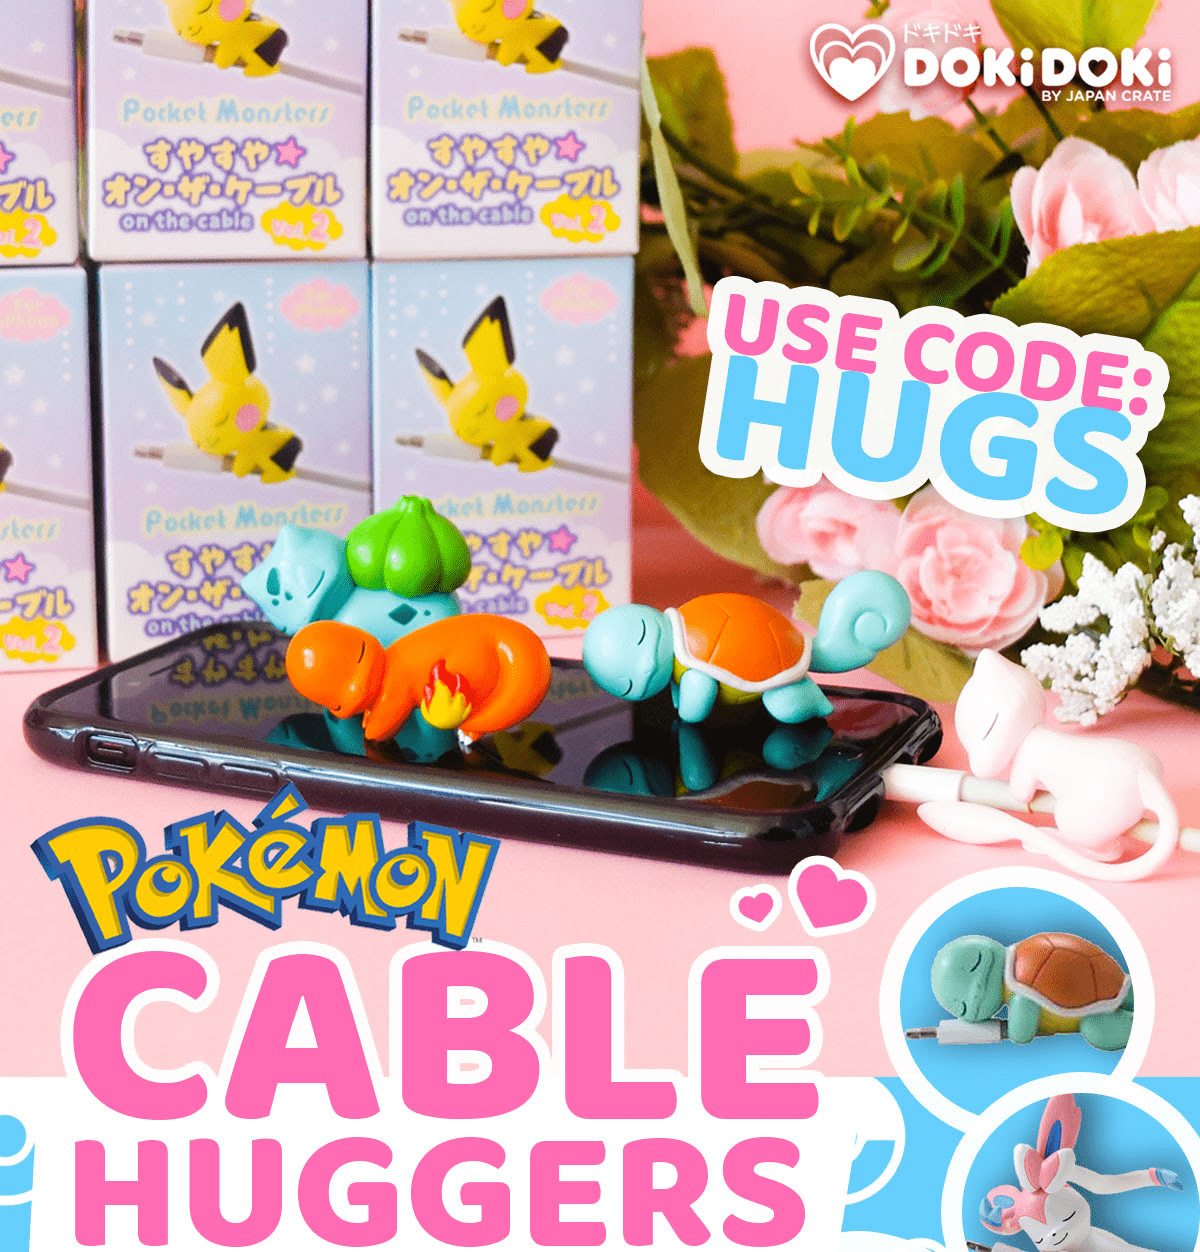 Doki Doki Crate Coupon: Get FREE Pokemon Cable Hugger With Your First Box!